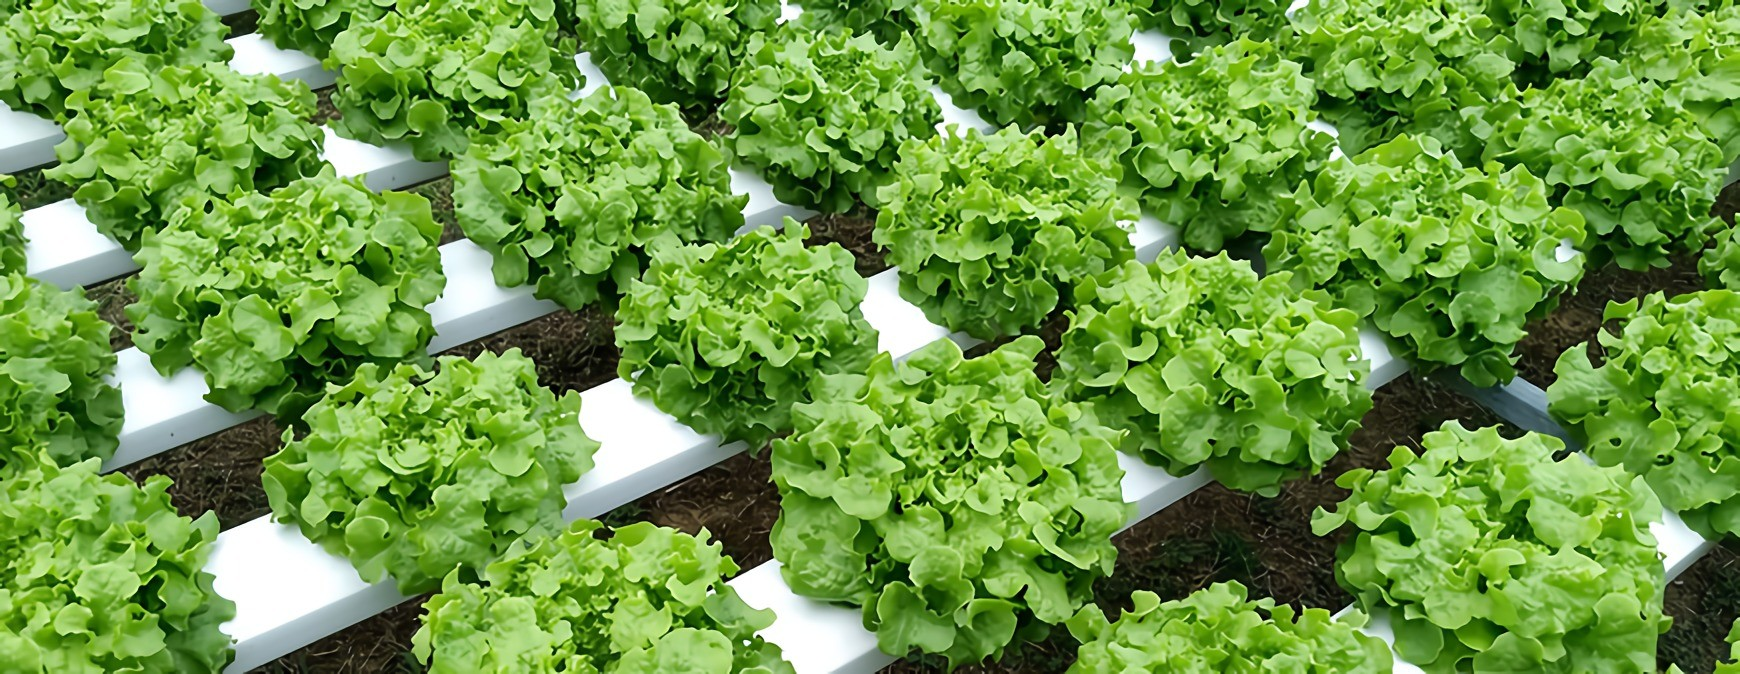 dutch hydroponic indoor farming